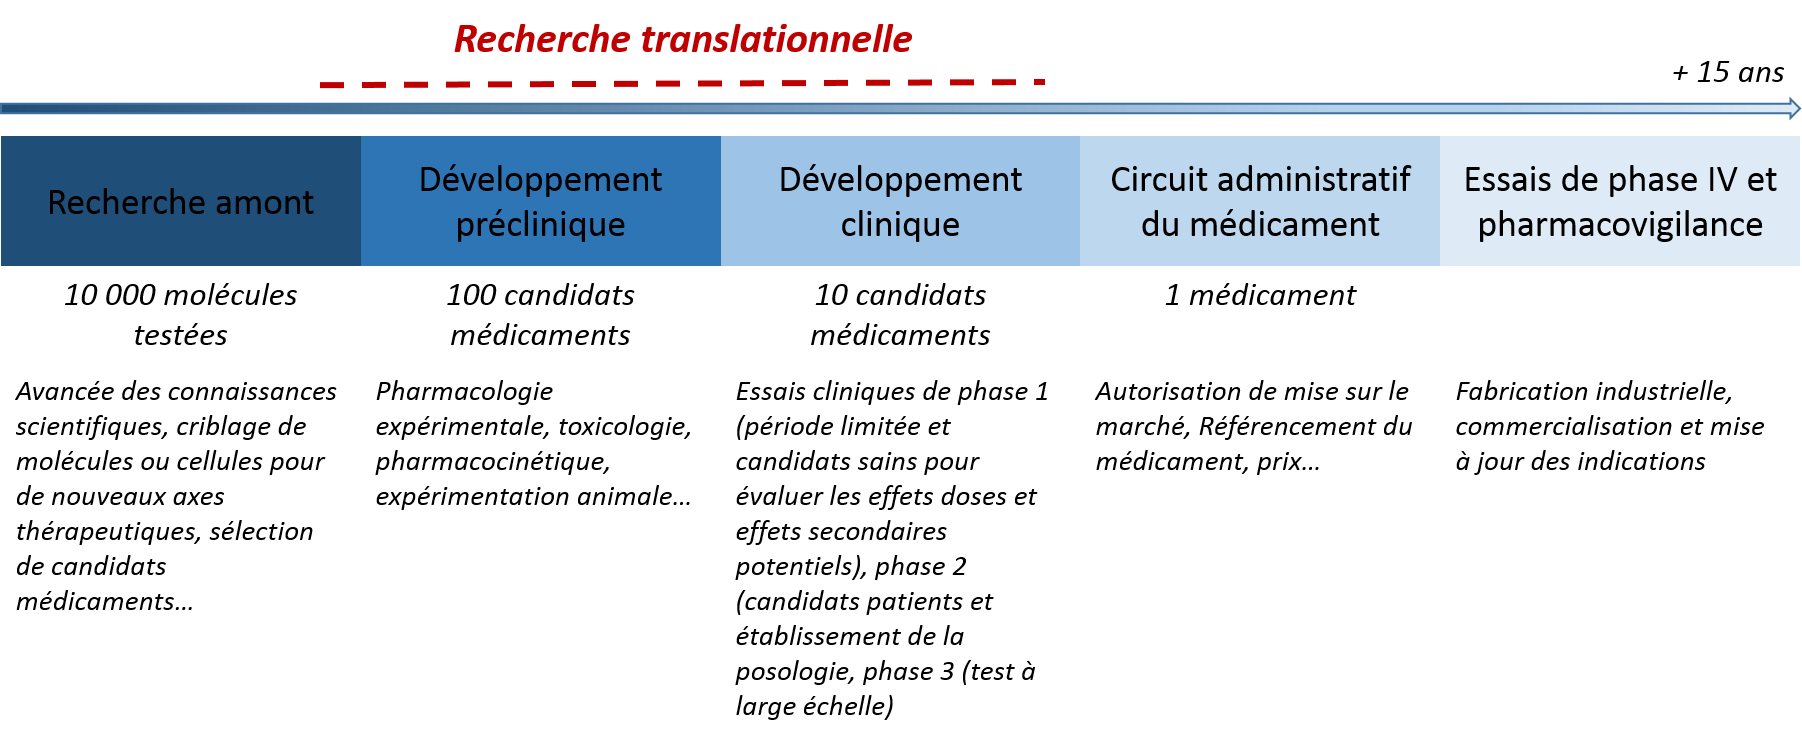 schema-rtranslationnelle-2.png